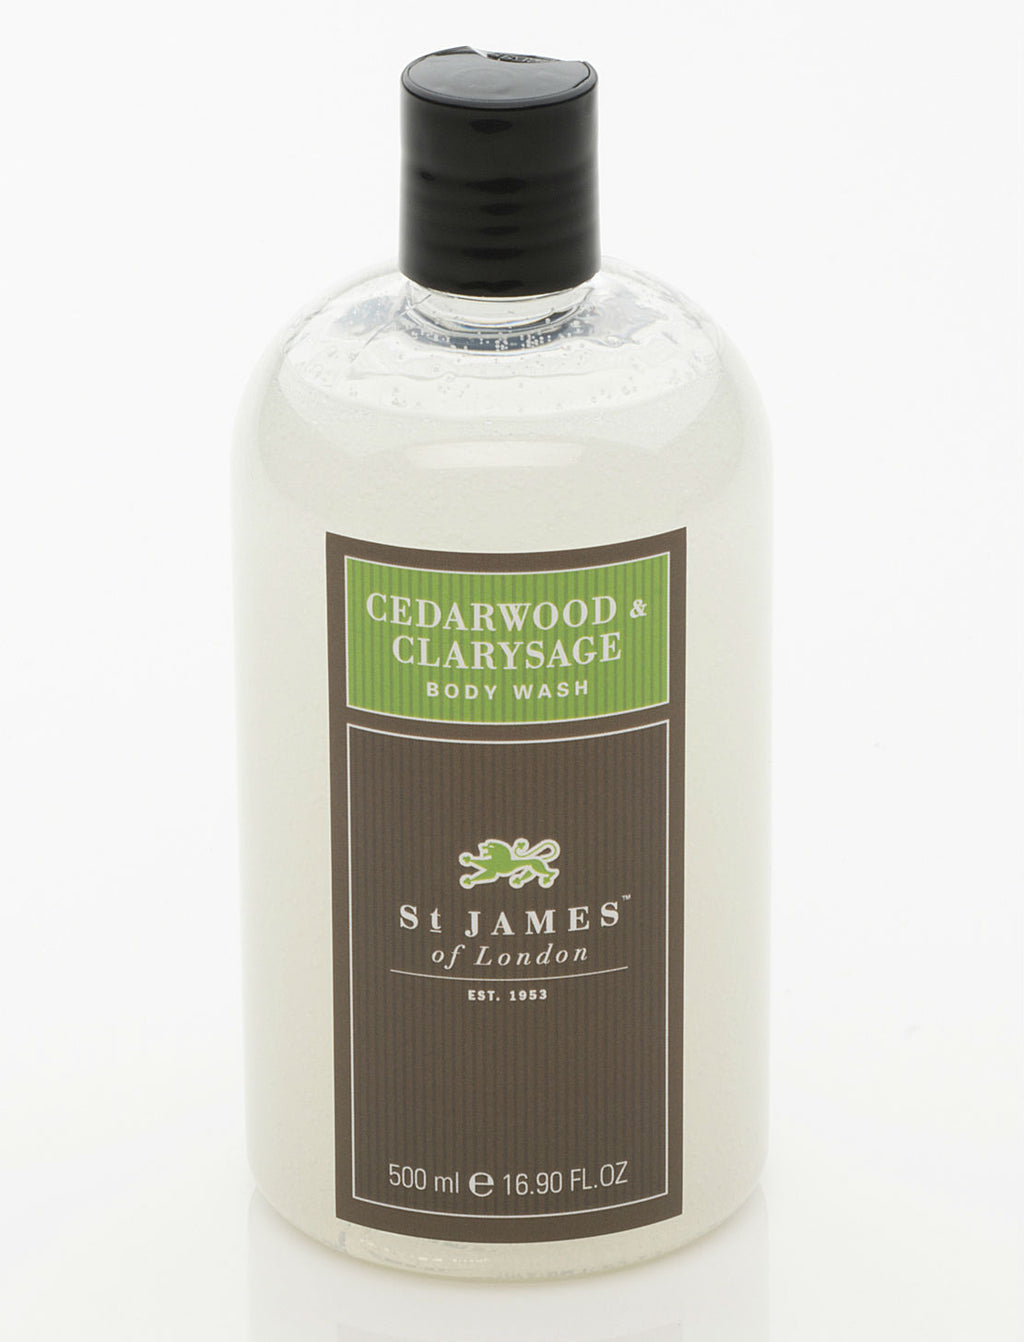 Cedarwood & Clarysage Body Wash  8oz (4331249139766)